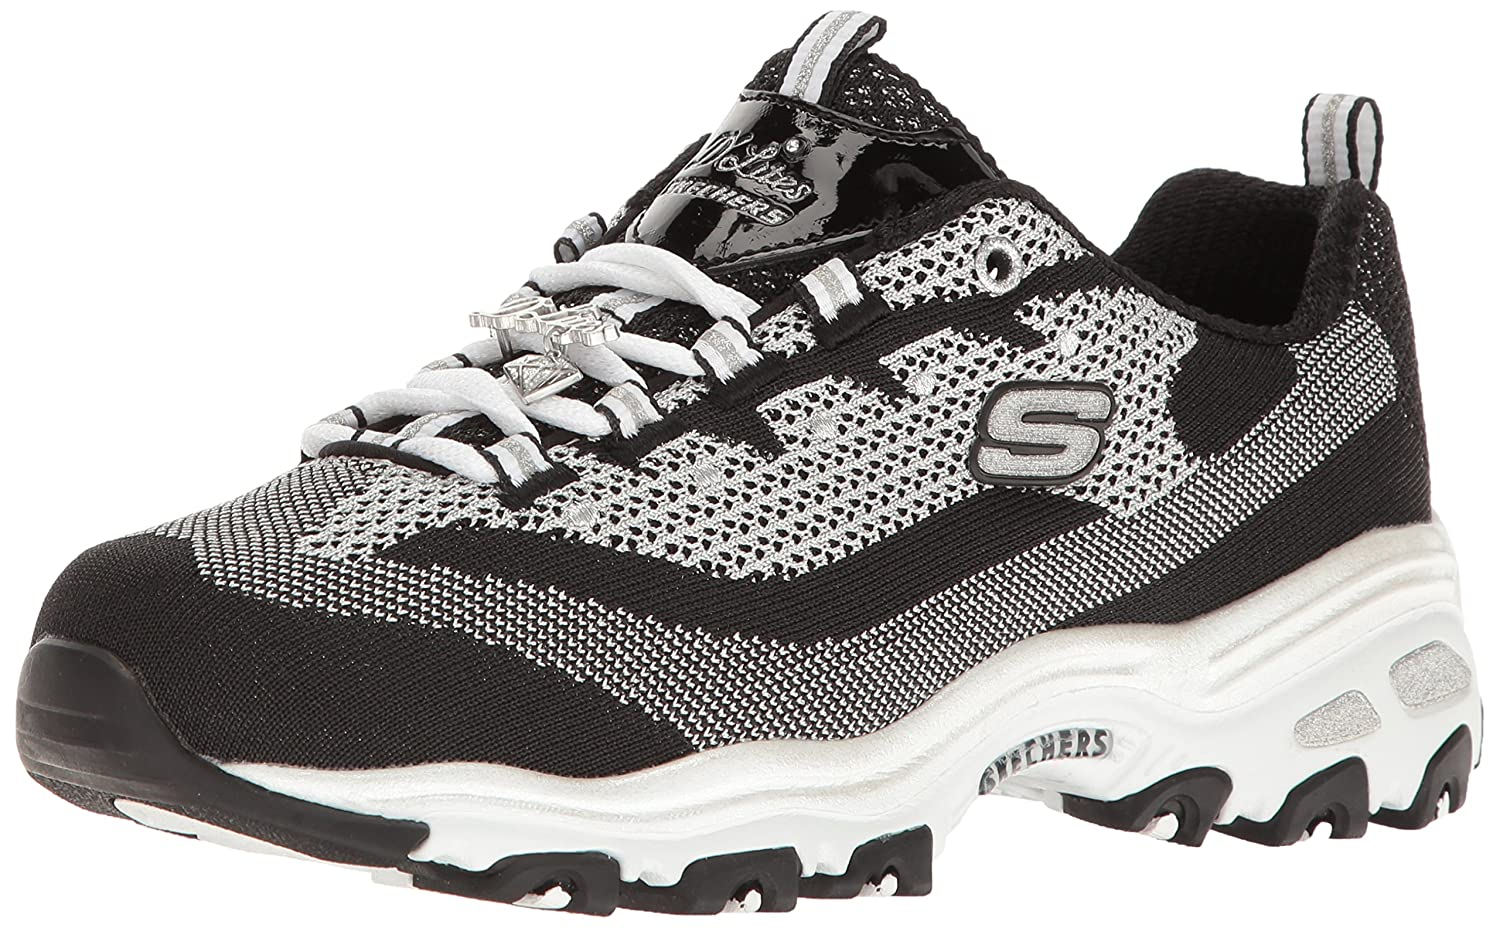 Skechers Women's D'Lites Memory Foam Lace-up Sneaker B01LXREKIE 8.5 B(M) US|Black White Shine